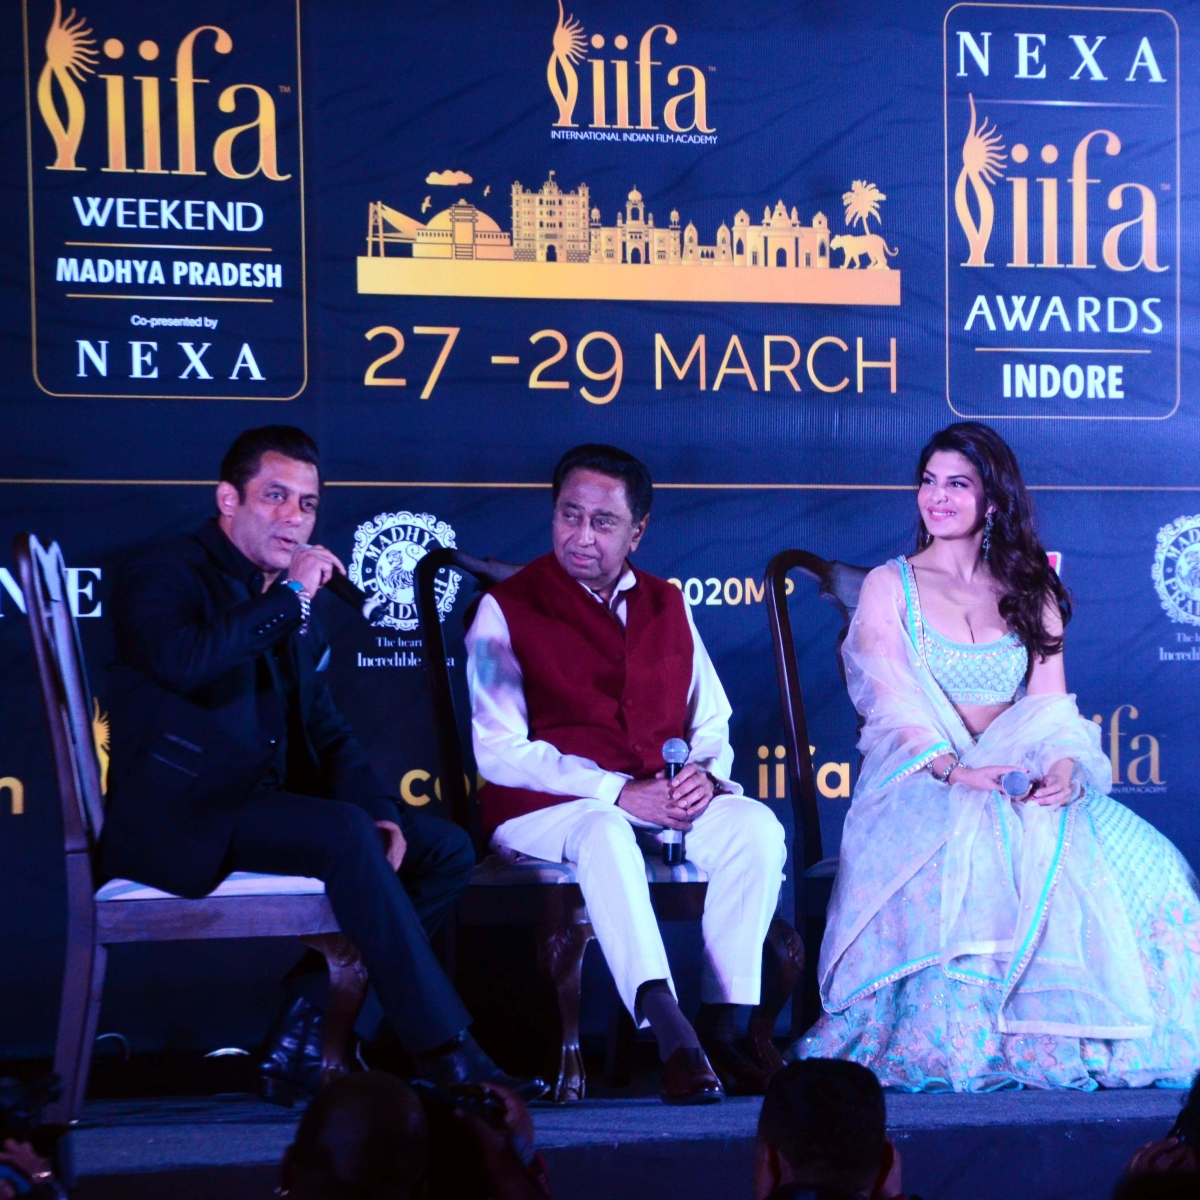 Shivraj Chouhan-led Madhya Pradesh Government transfers Rs 700 crore earmarked for IIFA to CM Relief Funds in fight against coronavirus